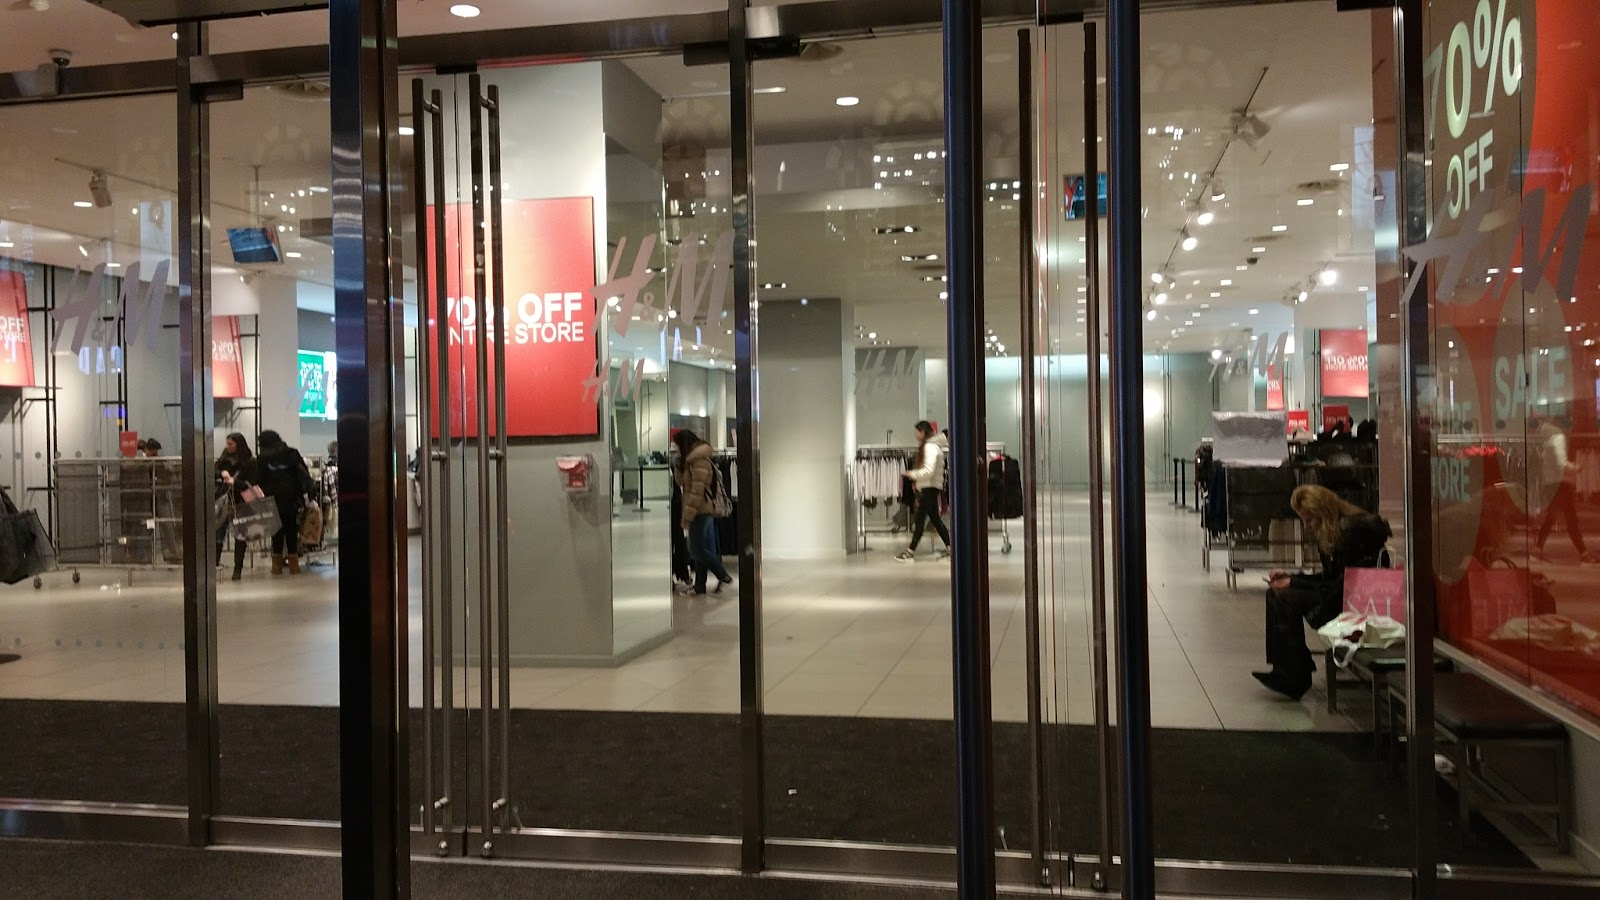 0ae3e458fe Terresa's Steals and Deals! =): LAST DAY: This H&M Store Closing: 70 ...